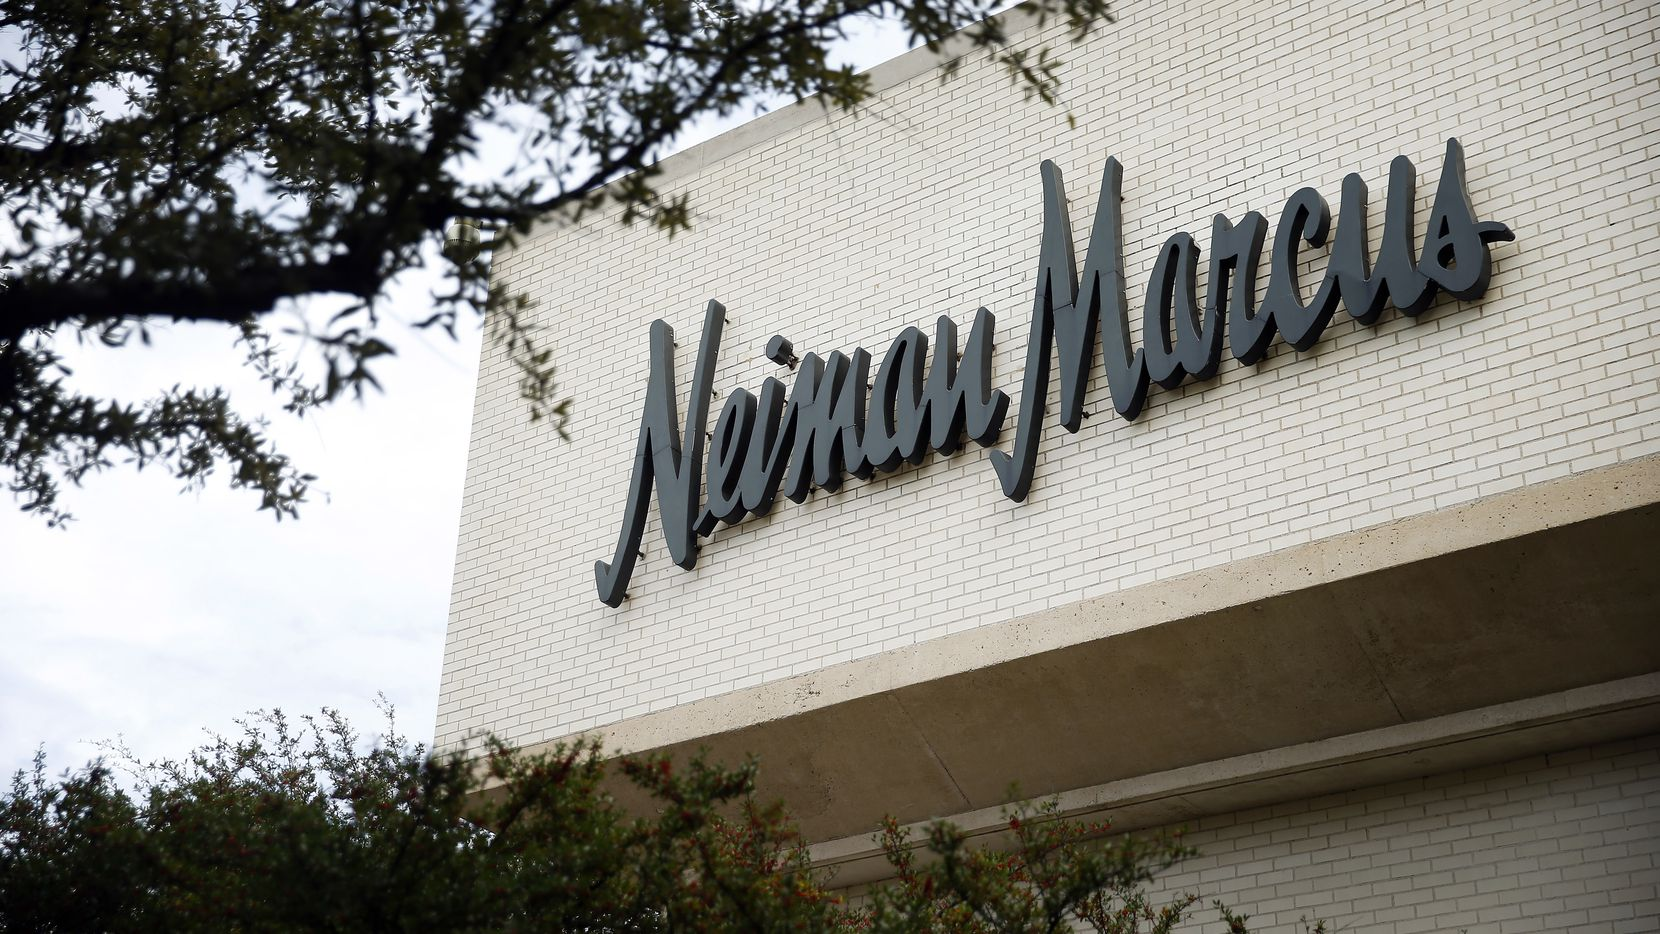 An exterior view of the Neiman Marcus store at NorthPark Center in Dallas.